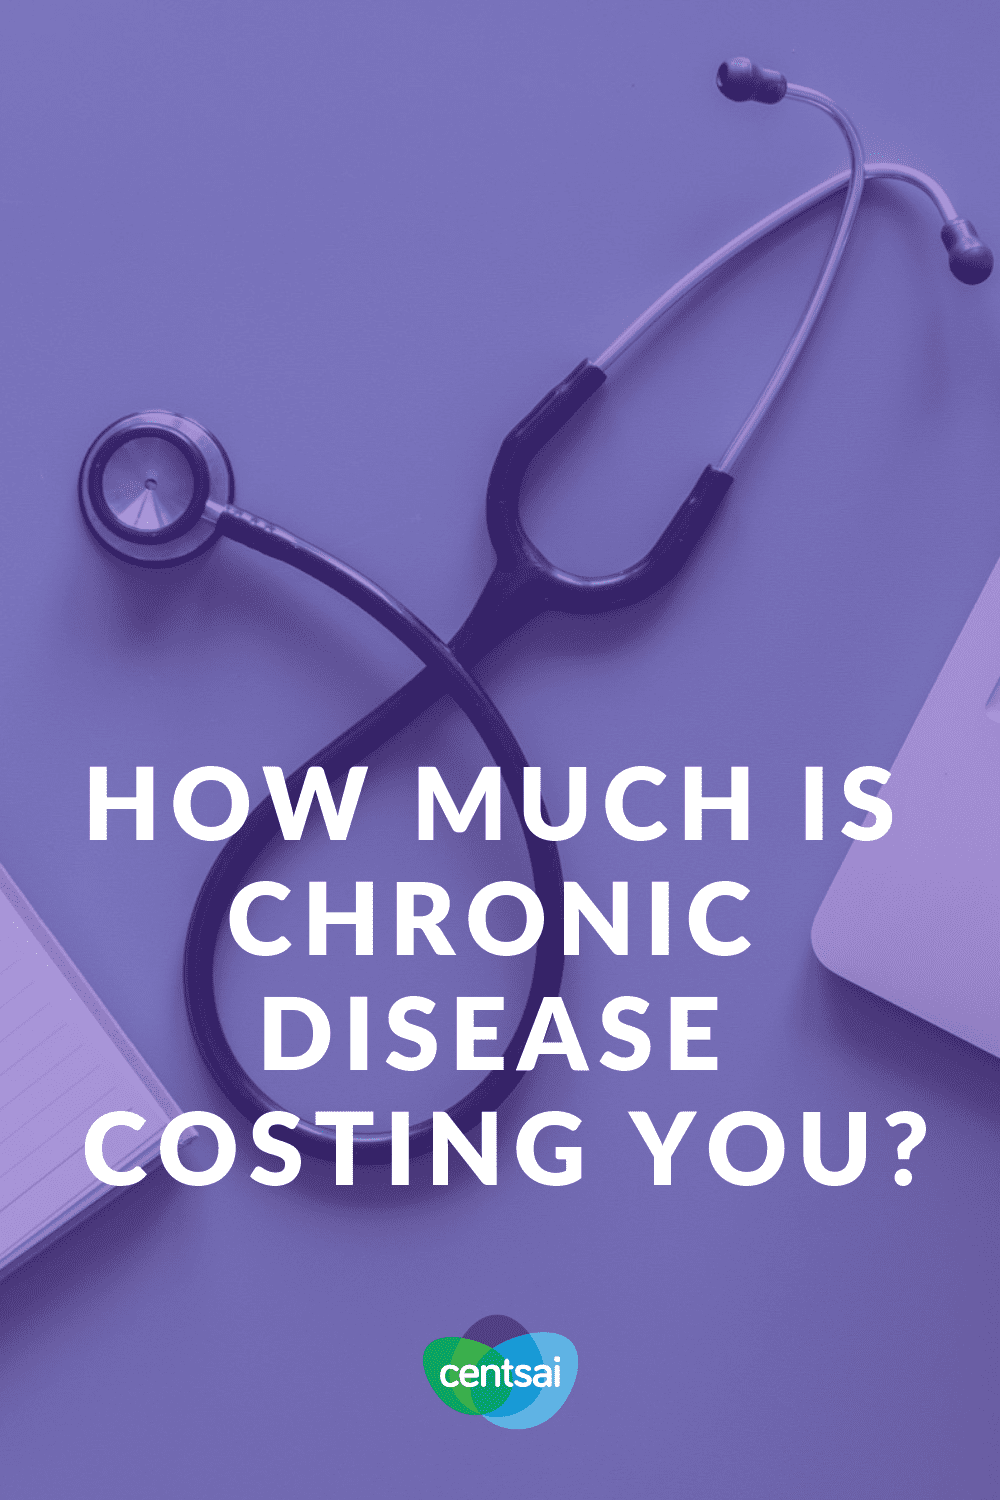 How Much Is Chronic Disease Costing You? If you have a chronic illness, your health might not be the only things in flux. So might your wallet. Learn the cost of chronic disease in the U.S. #chronicillness #disease #health #medicalcosts